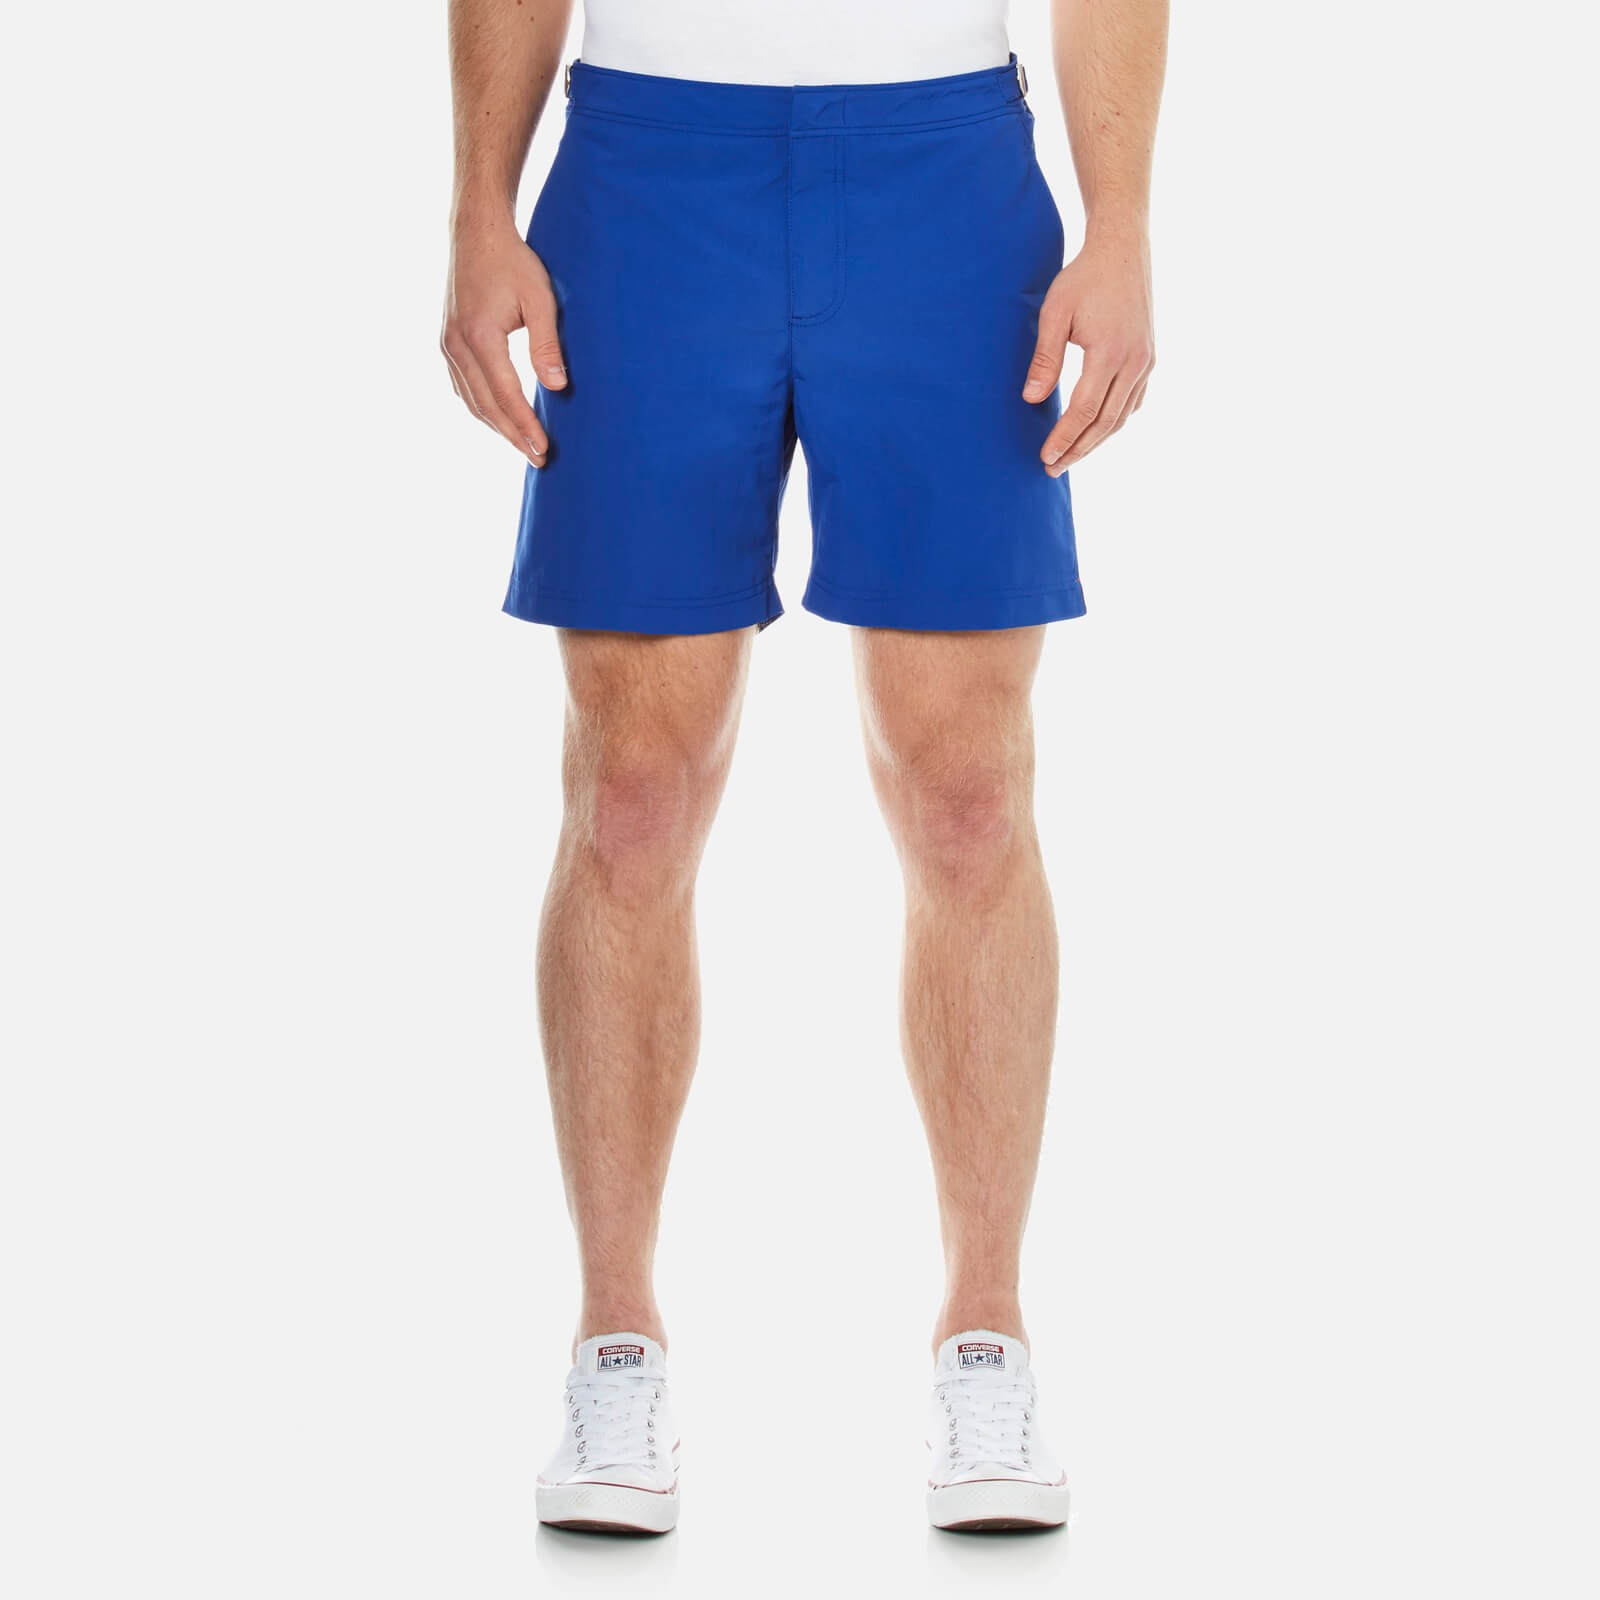 a647cfd1d6c85 Orlebar Brown Men's Mid Length Bulldog Swim Shorts - Cobalt - Free UK  Delivery over £50